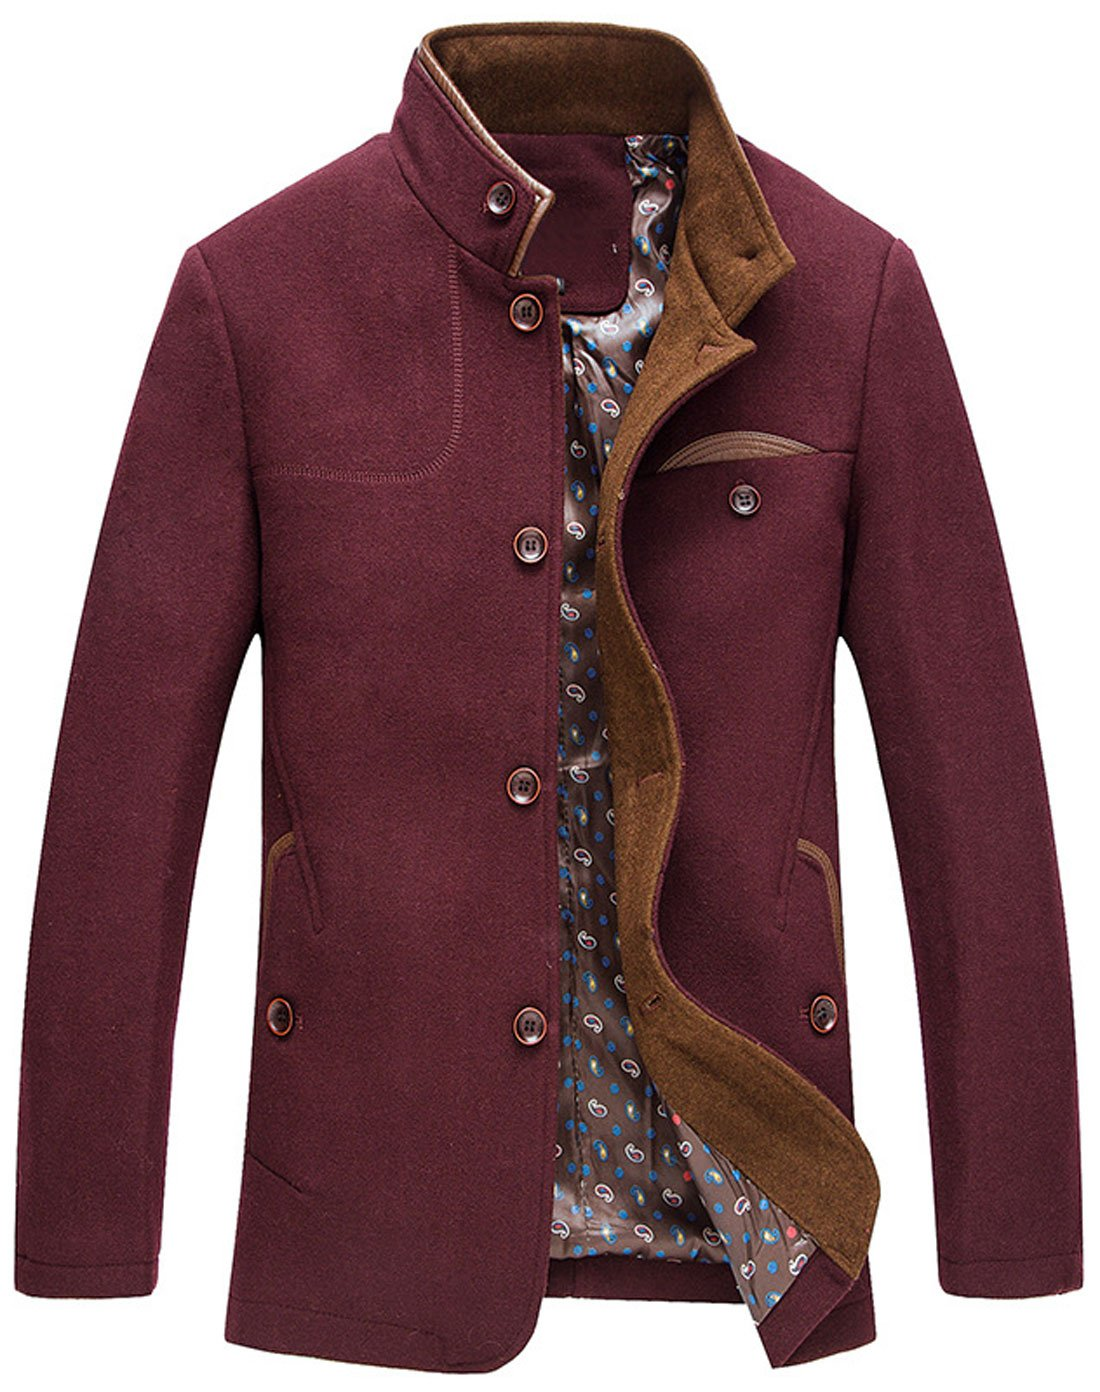 chouyatou Men's Gentle Band Collar Single Breasted Wool Blend Pea Coat (WineRed, Small) by chouyatou